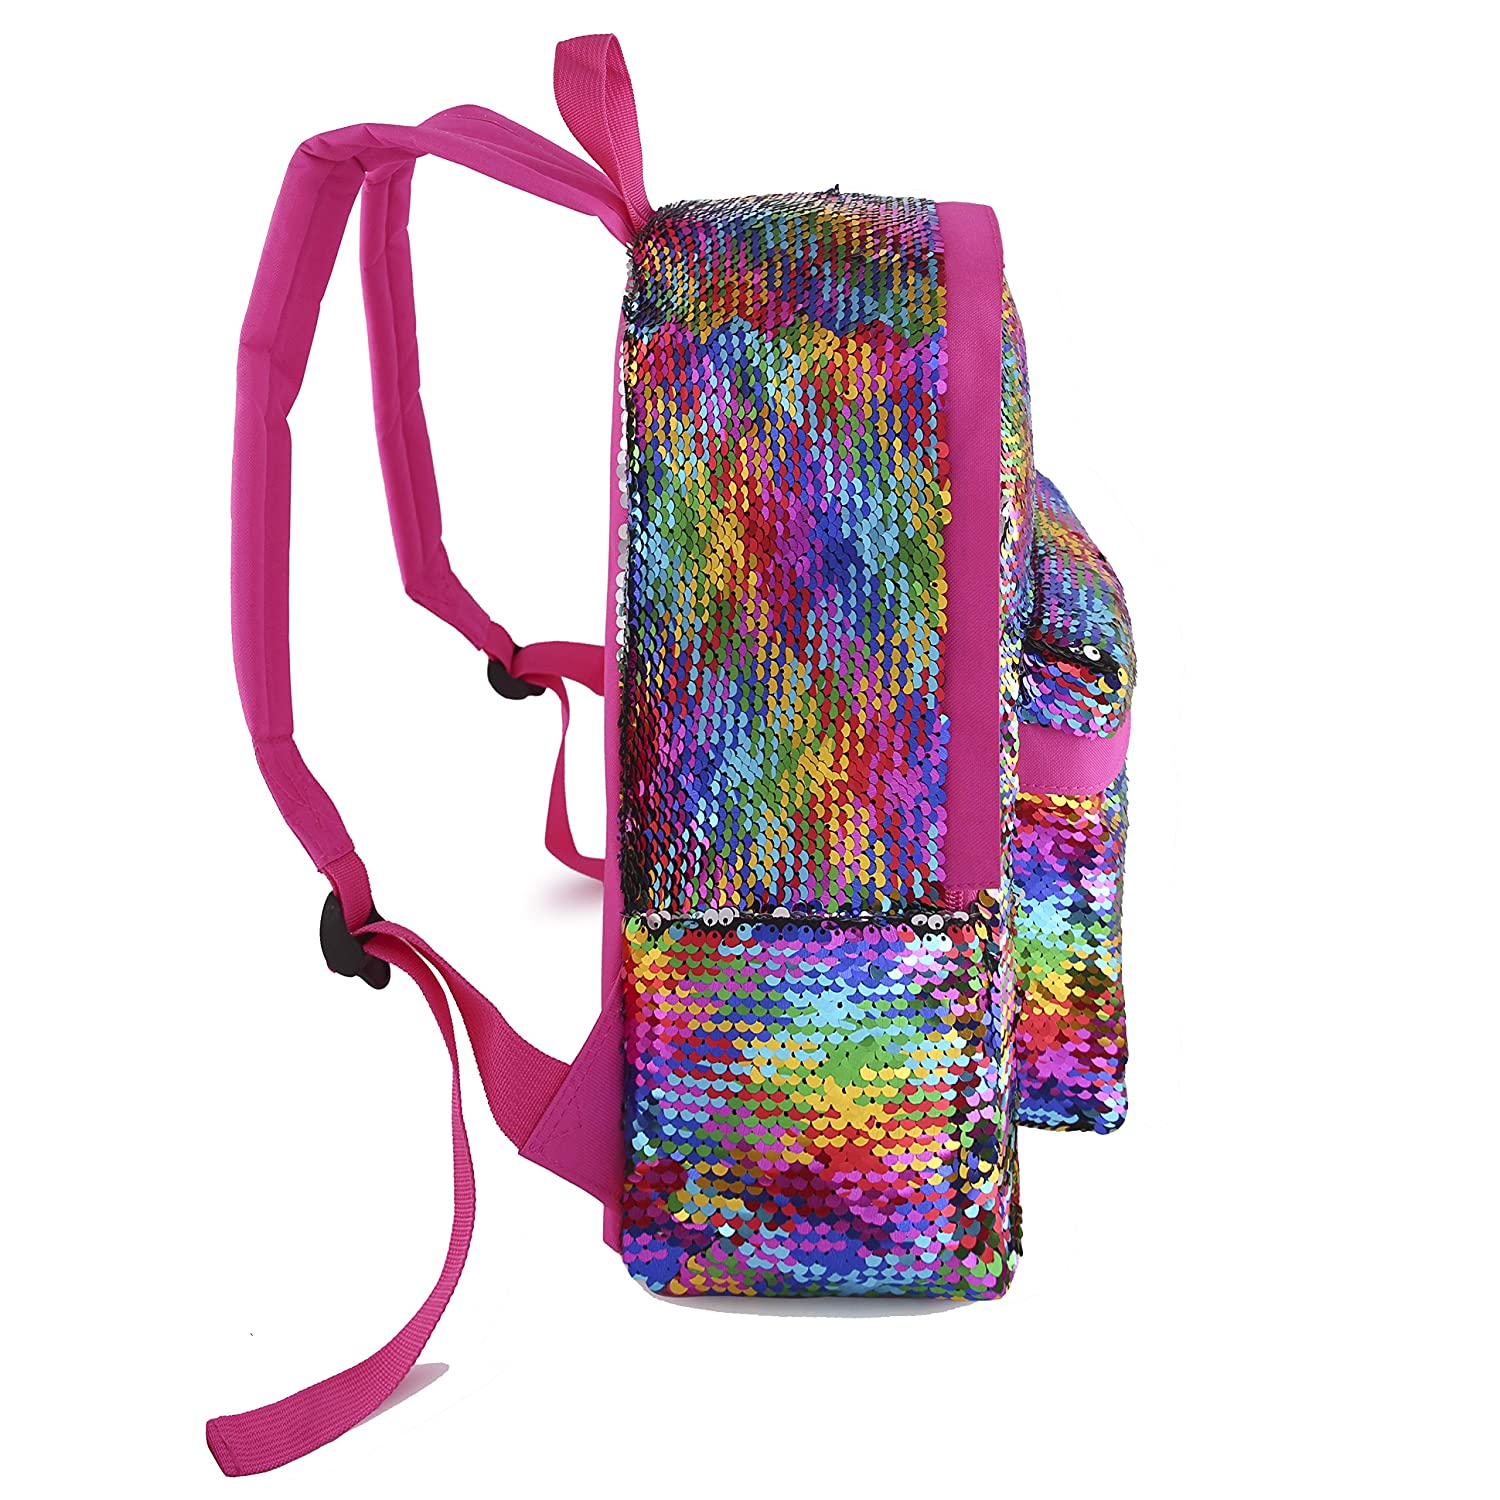 Toddler Backpack for Girls Glitter Preschool Backpack Sparkly Magic Mermaid Small Sequins Bookbags Pink